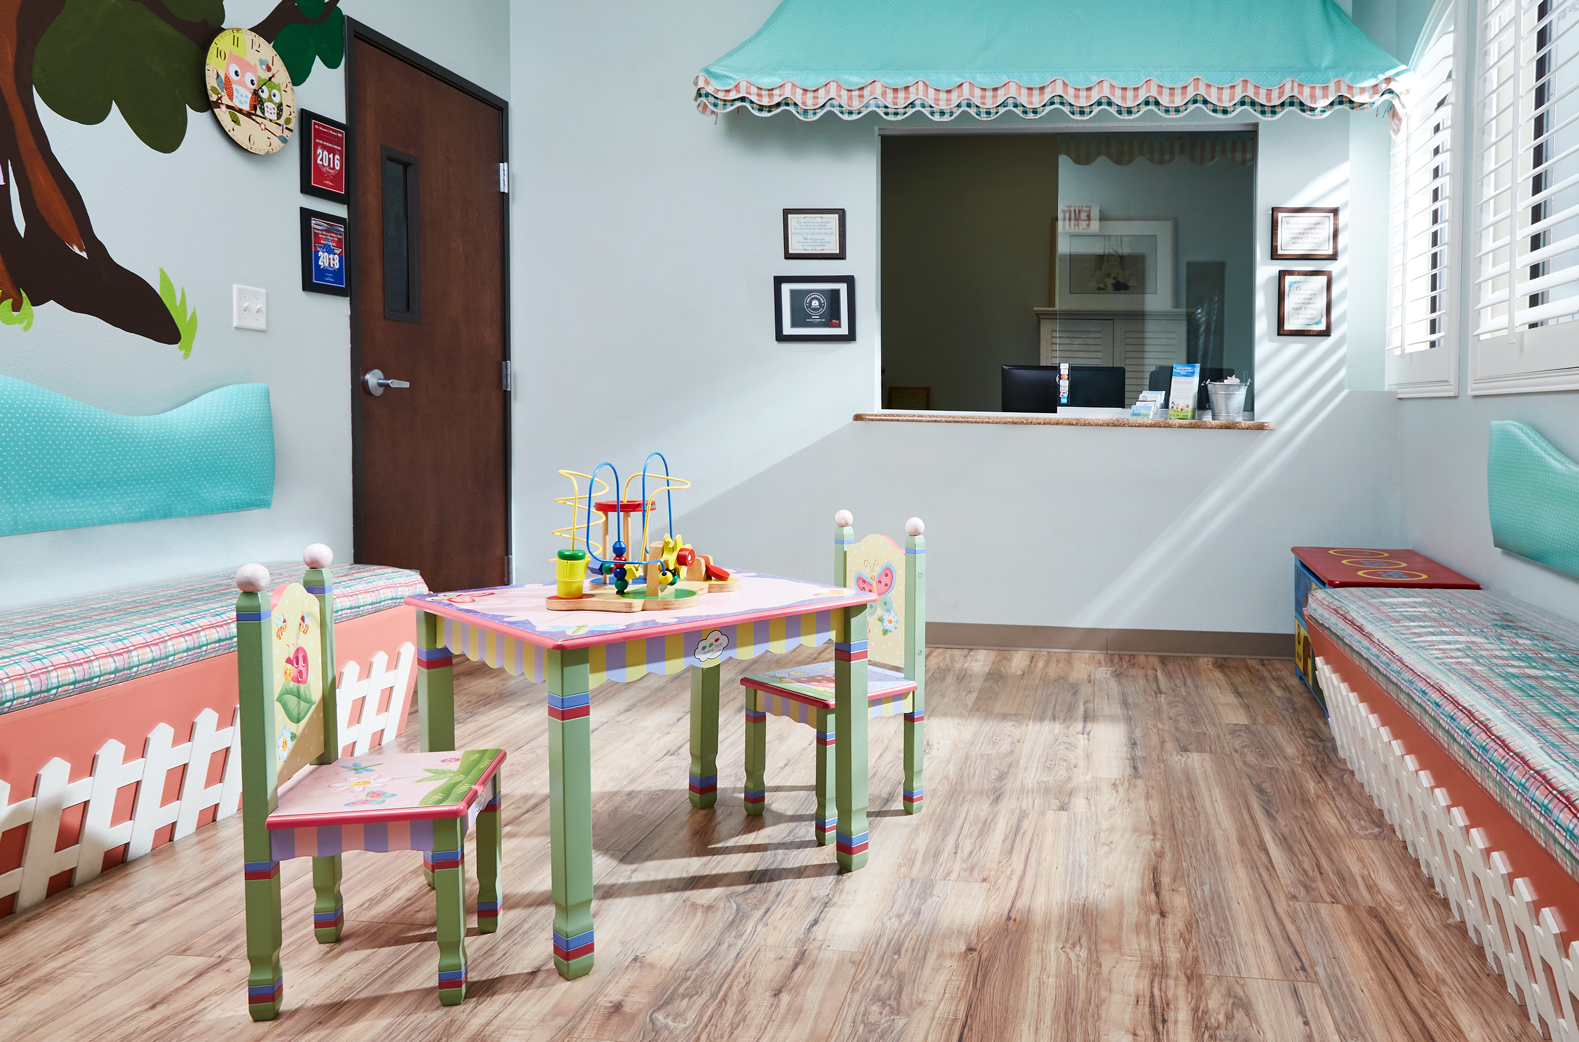 About Pediatric Offices at Willow Bend | Pediatric Offices